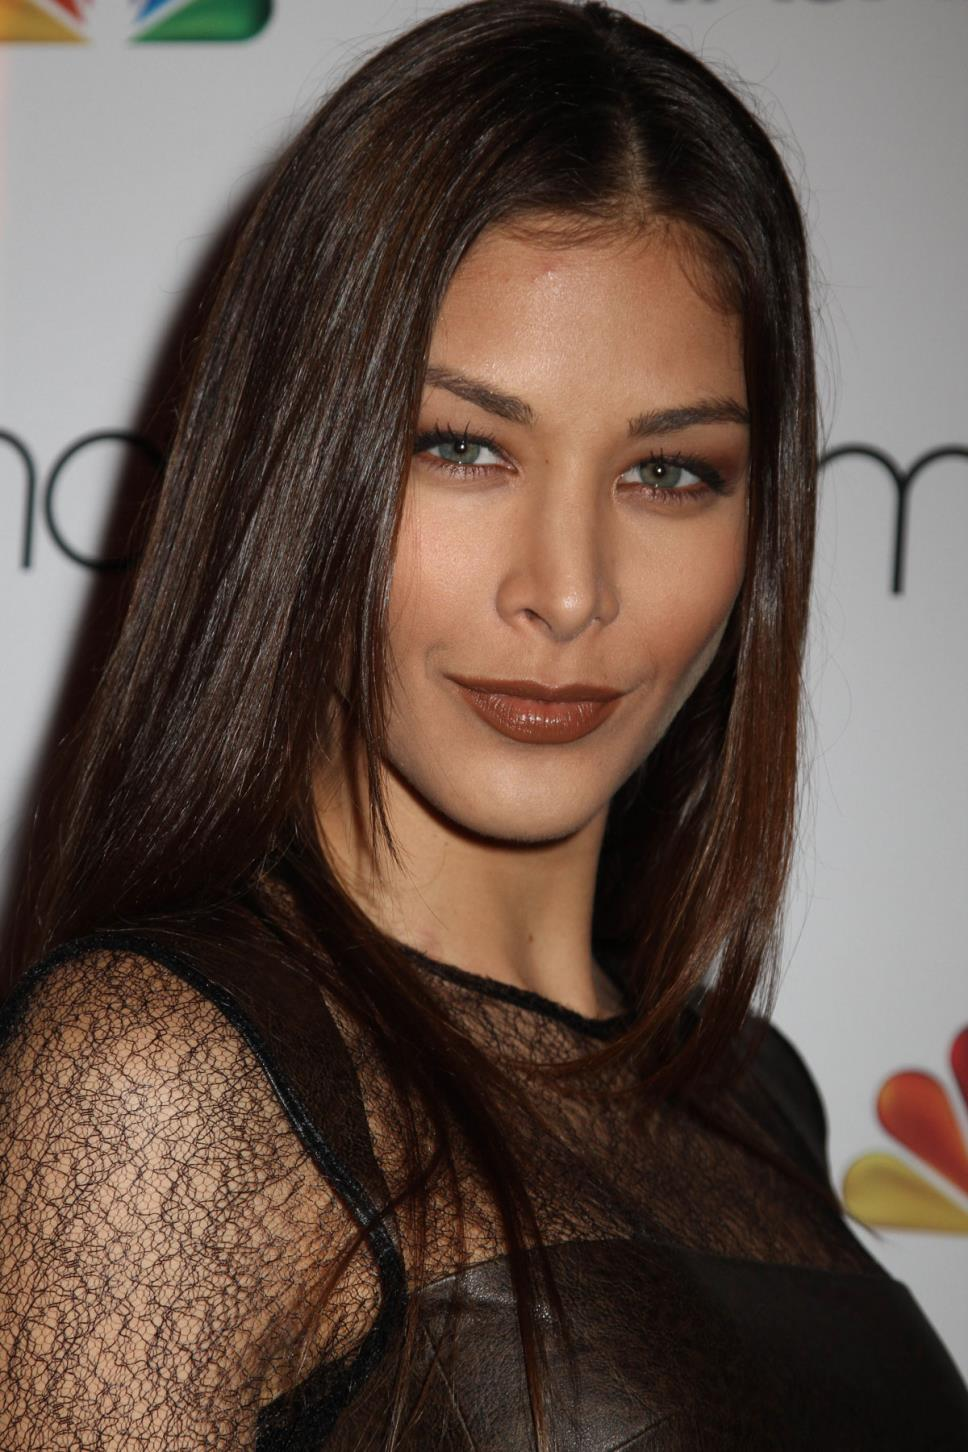 Dayana Mendoza Net Worth